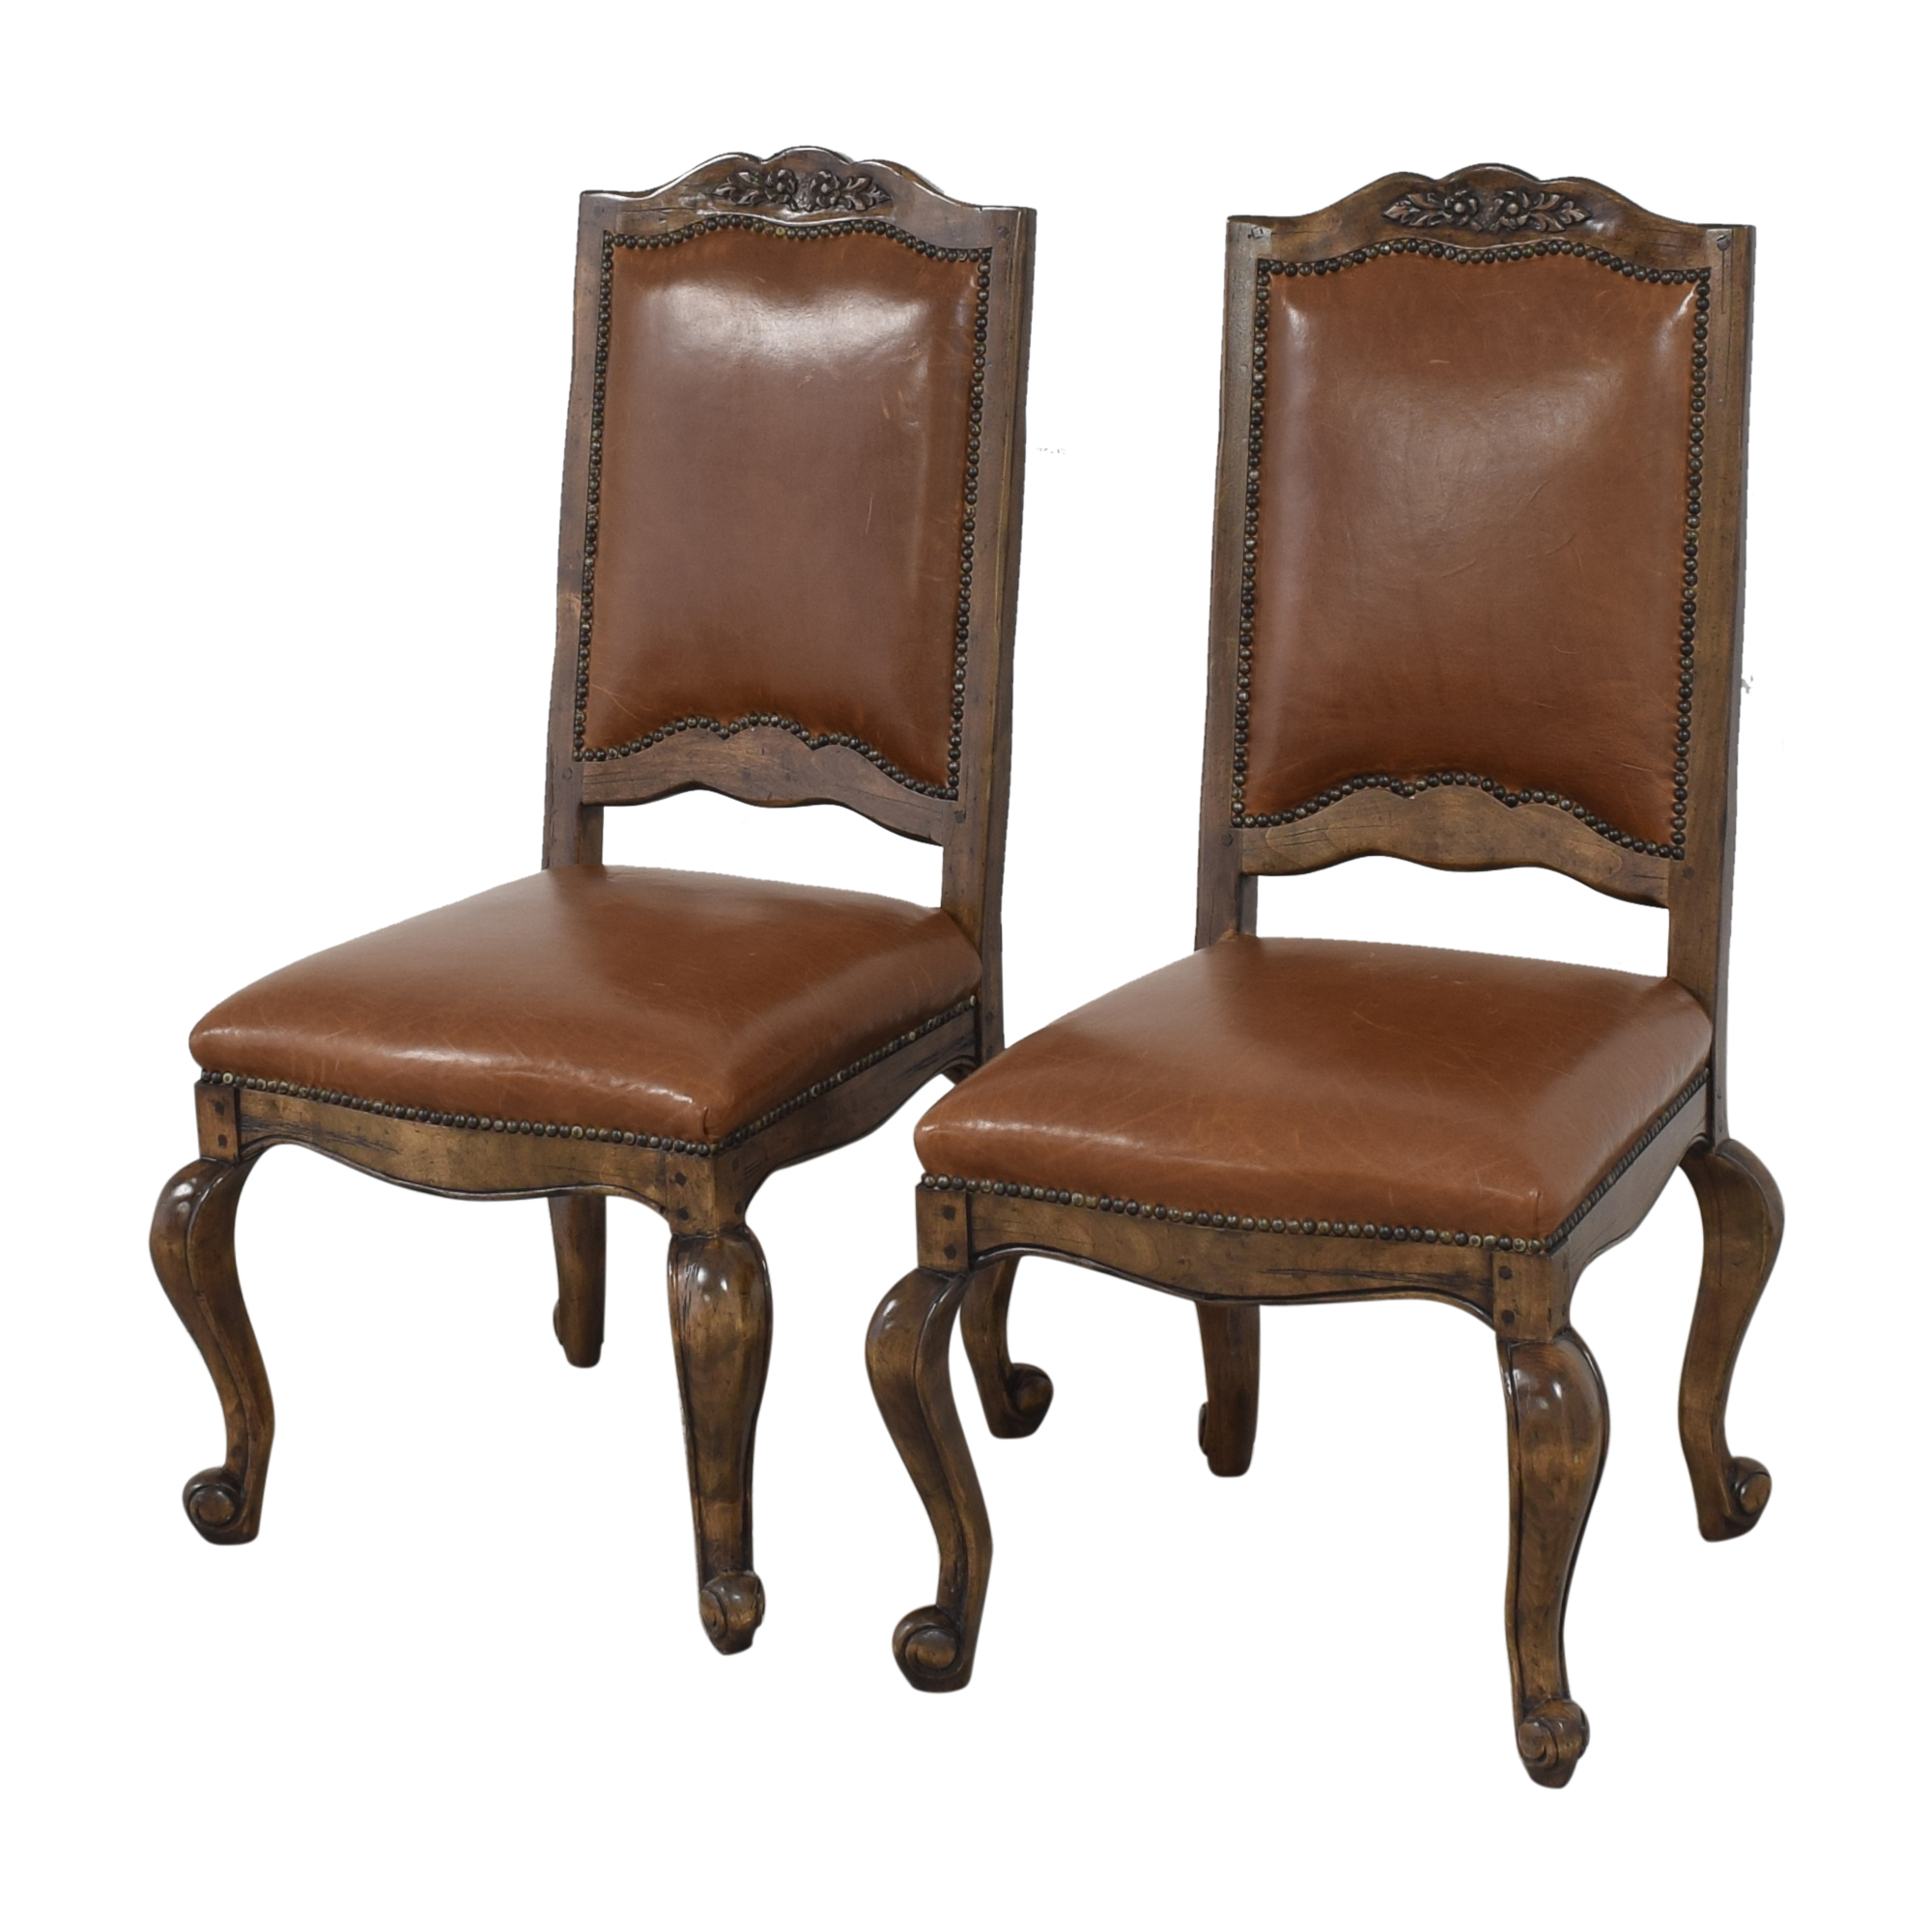 Cabriole Dining Chairs used